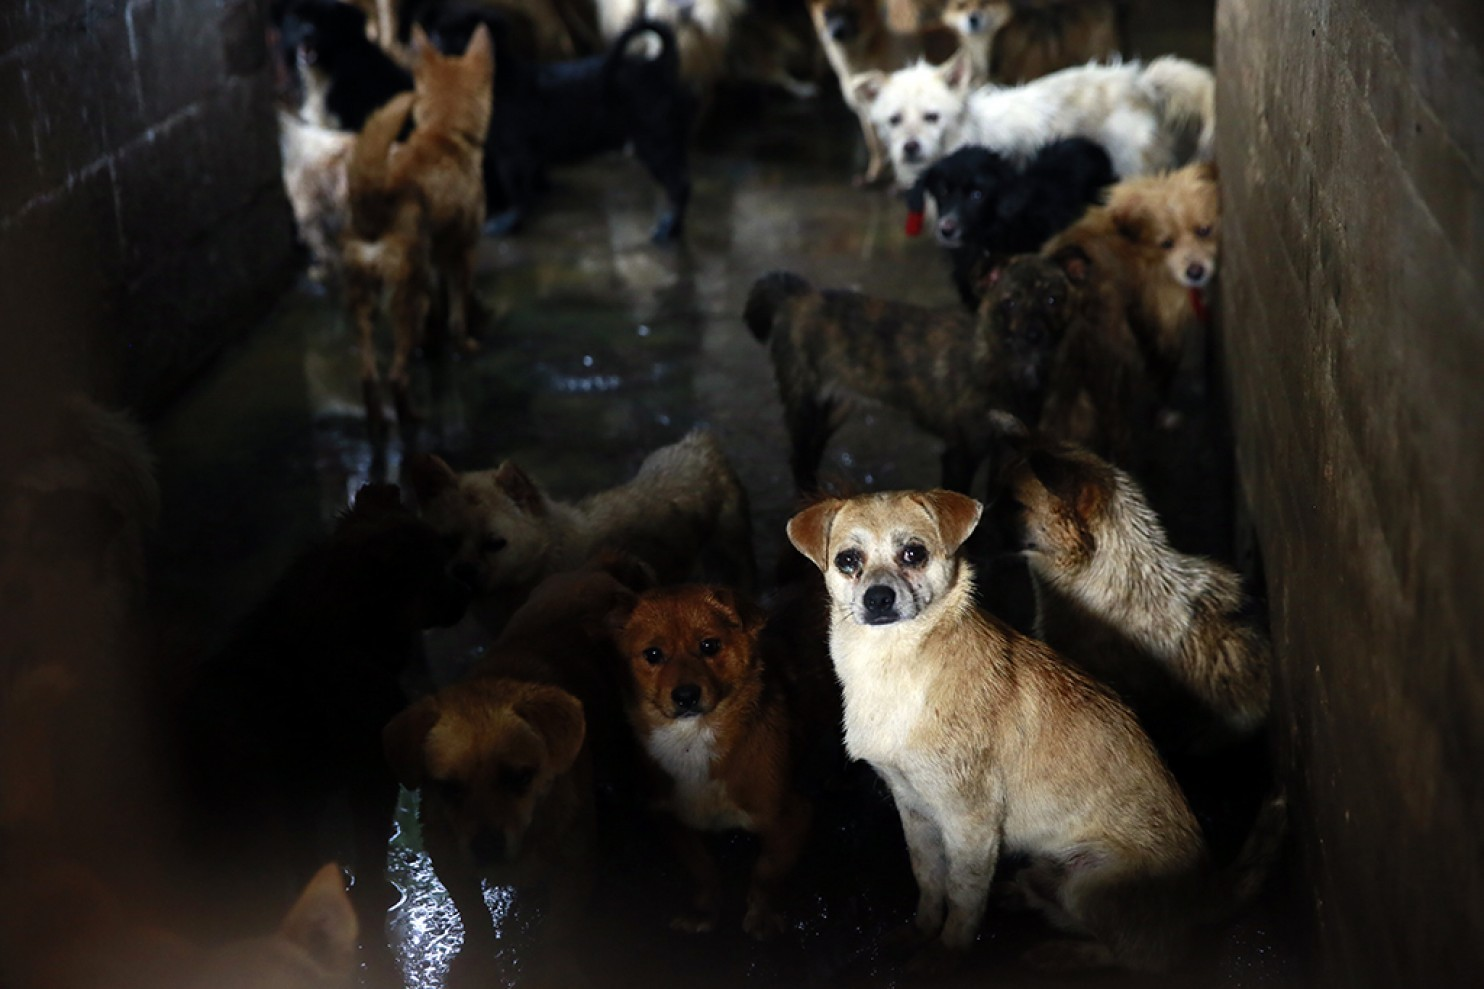 Pet dogs await their own death in a slaughterhouse, while they watch as others are slaughtered in front of them.